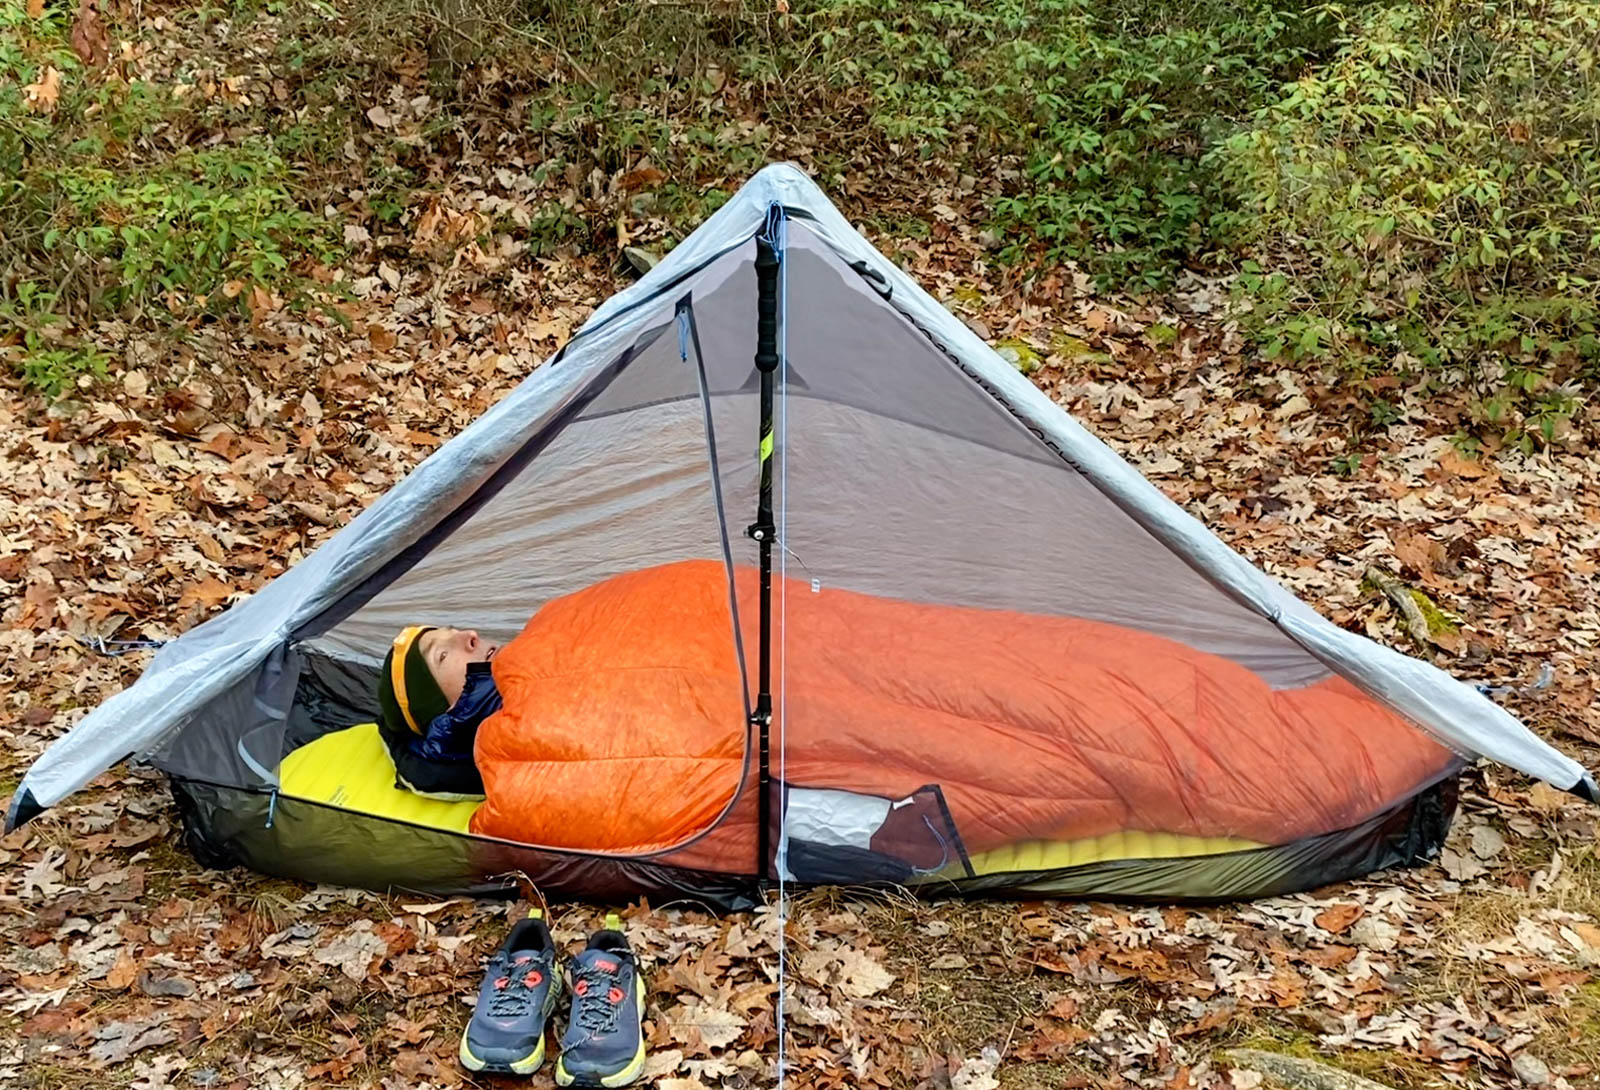 B.A.S.E One Man Bug Tent Shelter Lightweight /& Compact Trecking Hiking Camping